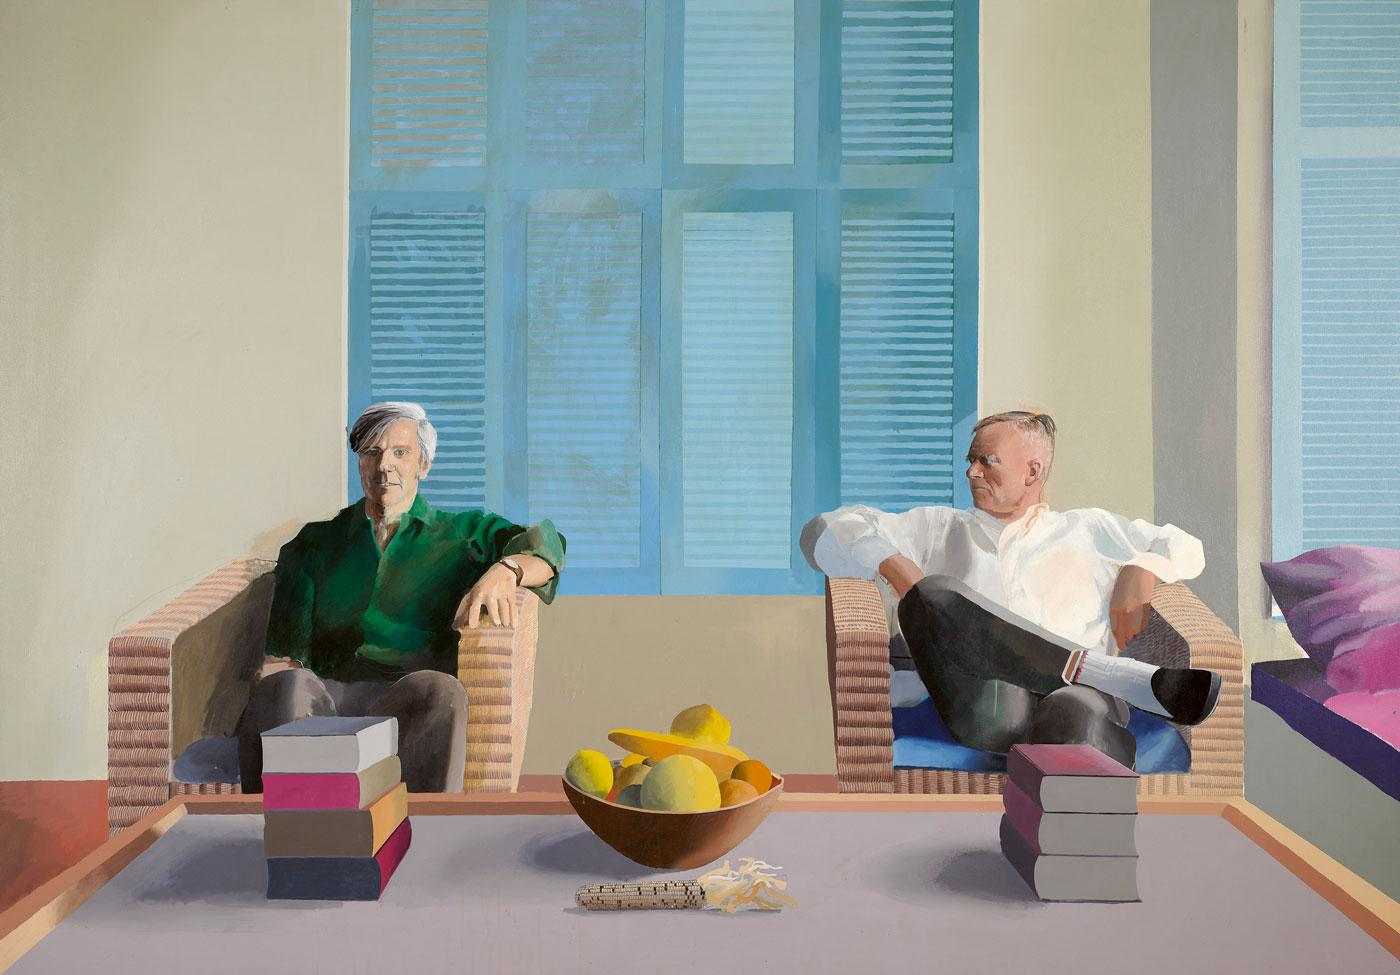 Christopher Isherwood and Don Bachardy by David Hockney, 1968.